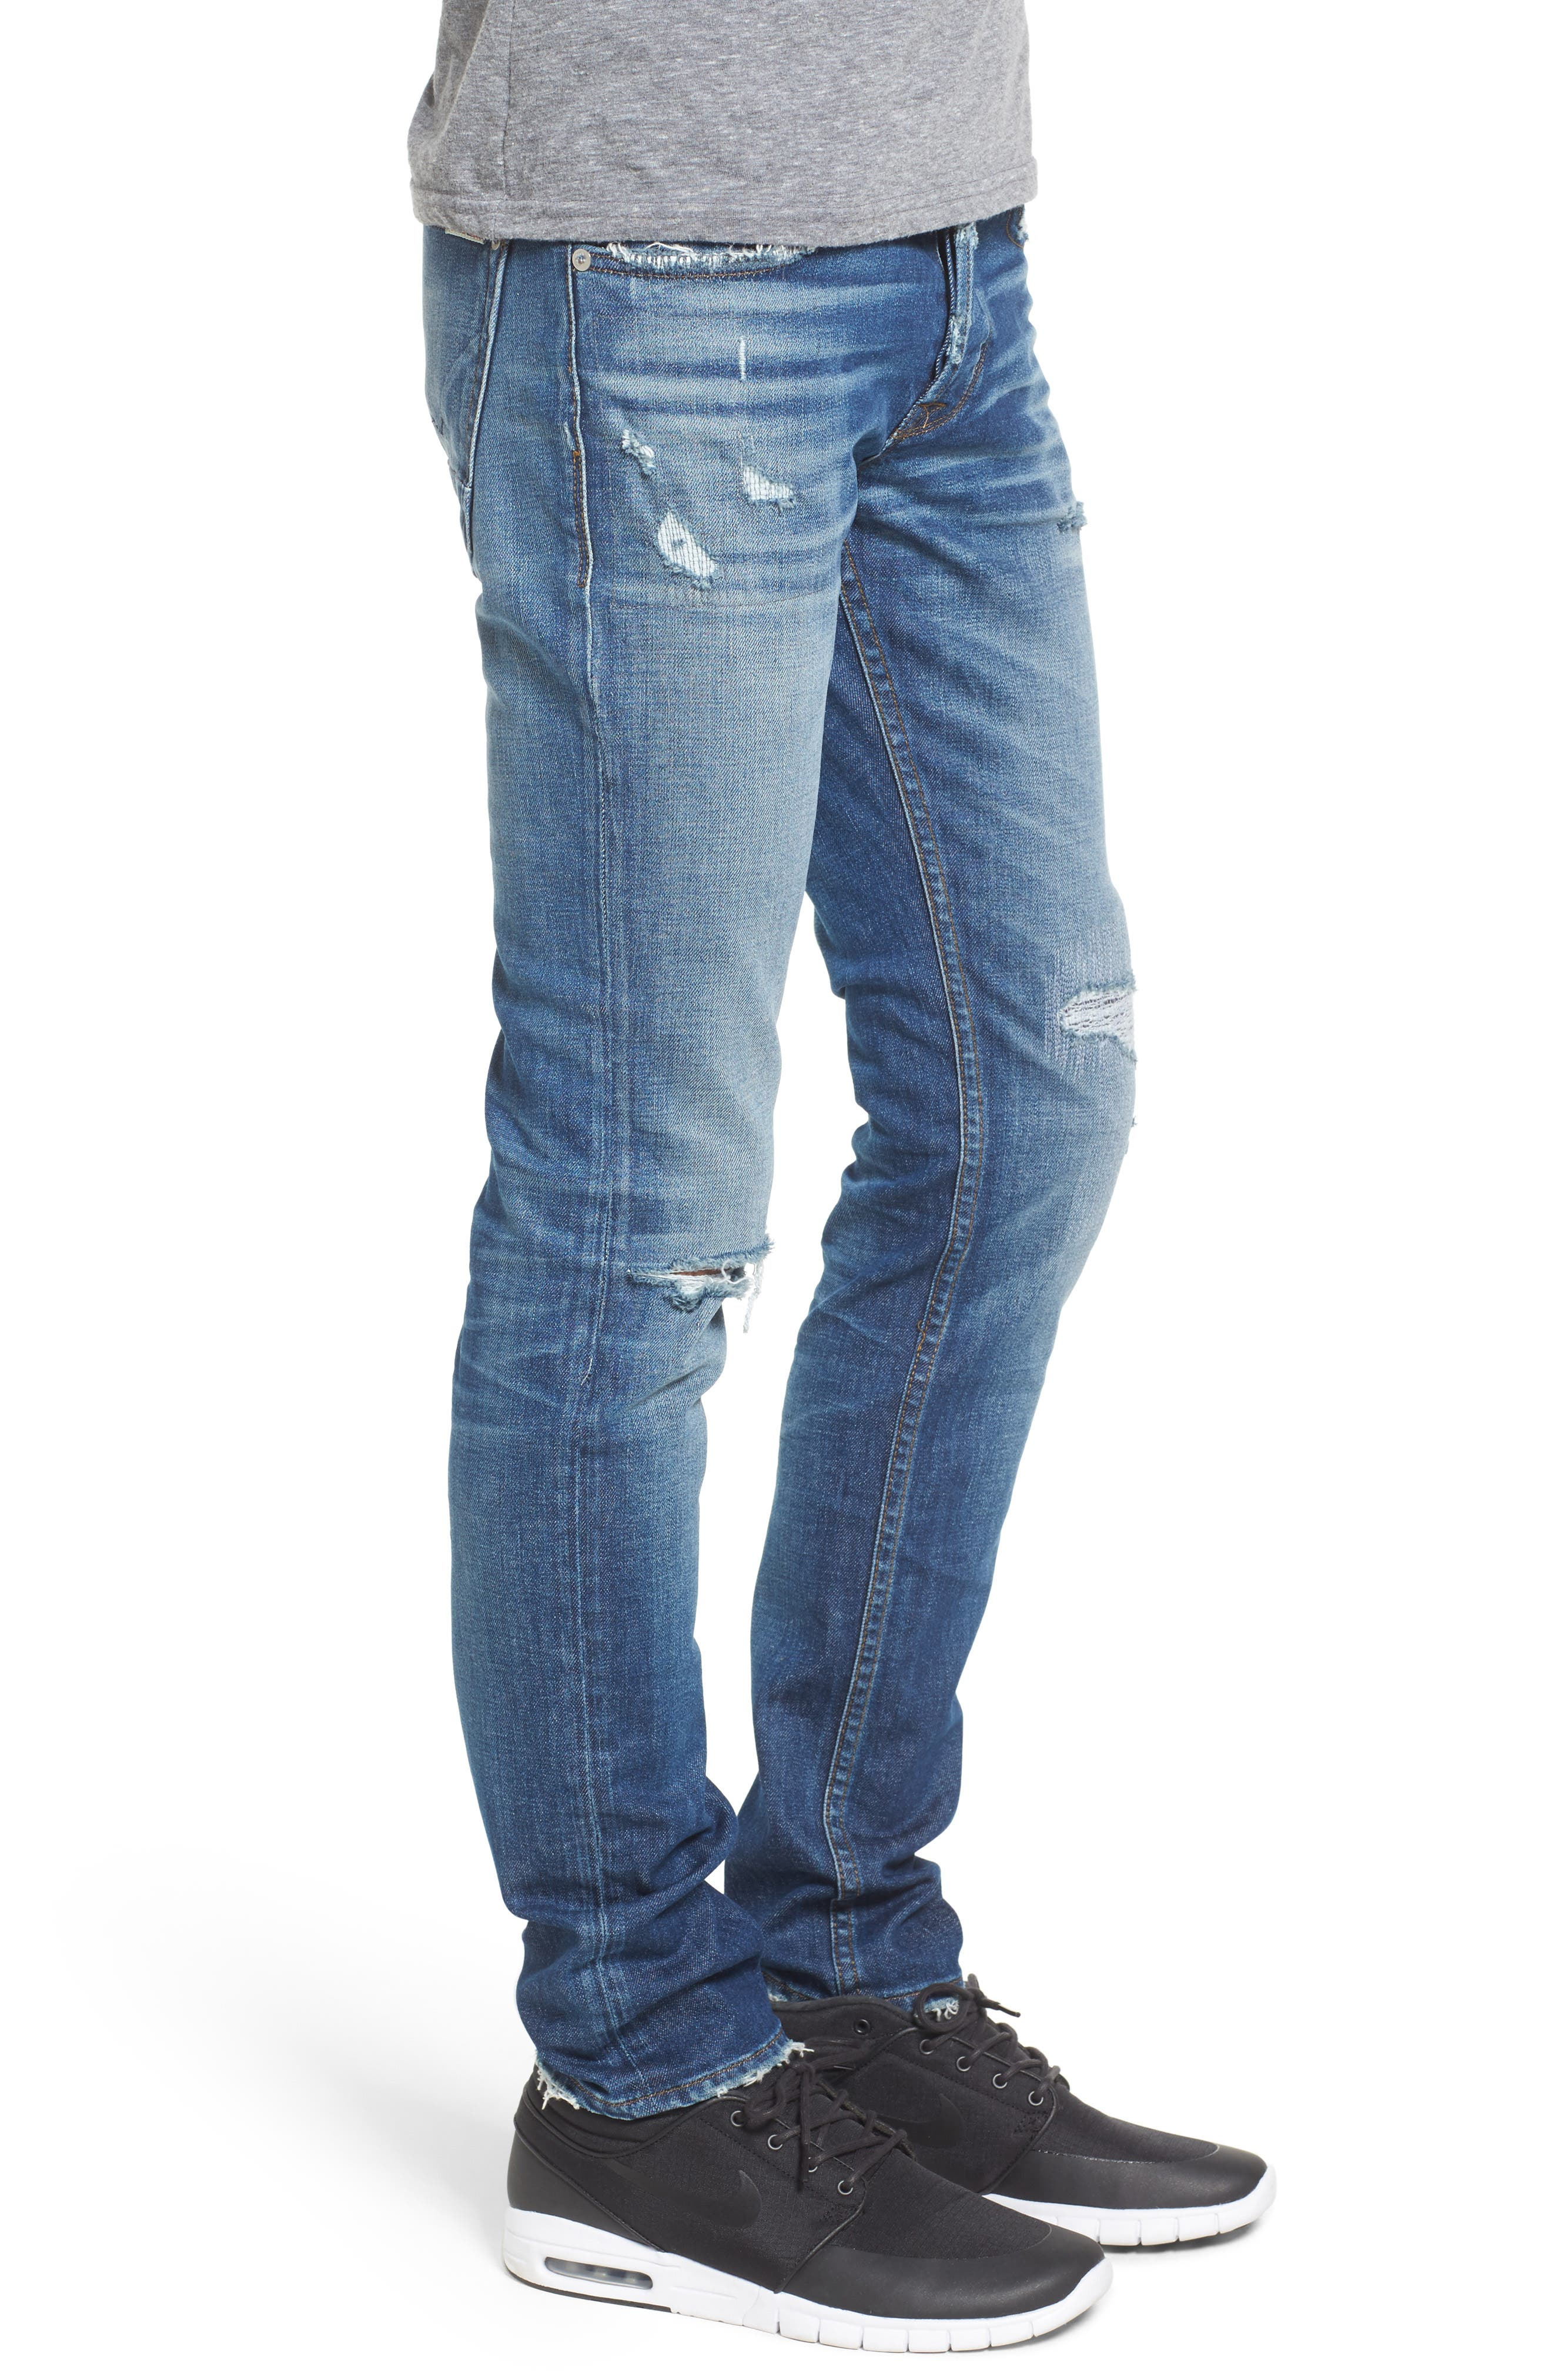 Axl Skinny Fit Jeans,                             Alternate thumbnail 3, color,                             422